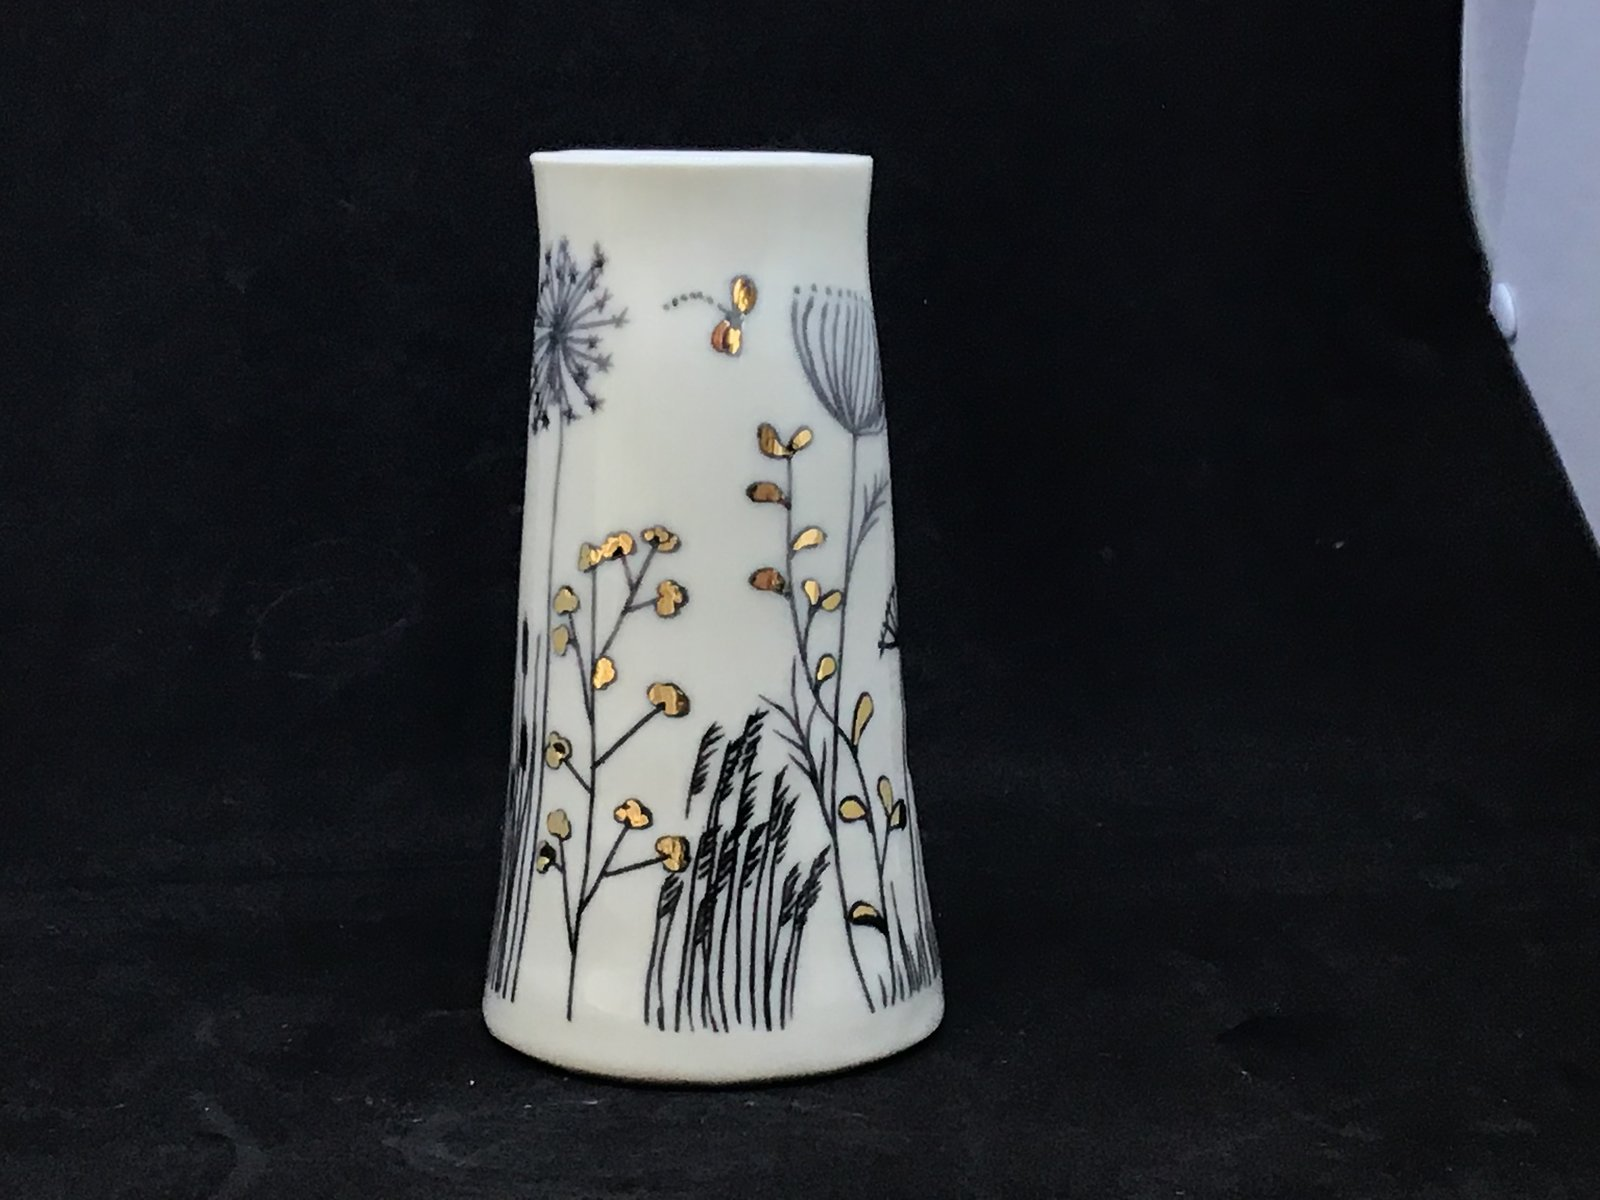 Porcelain grasses vase with gold lustre highlights